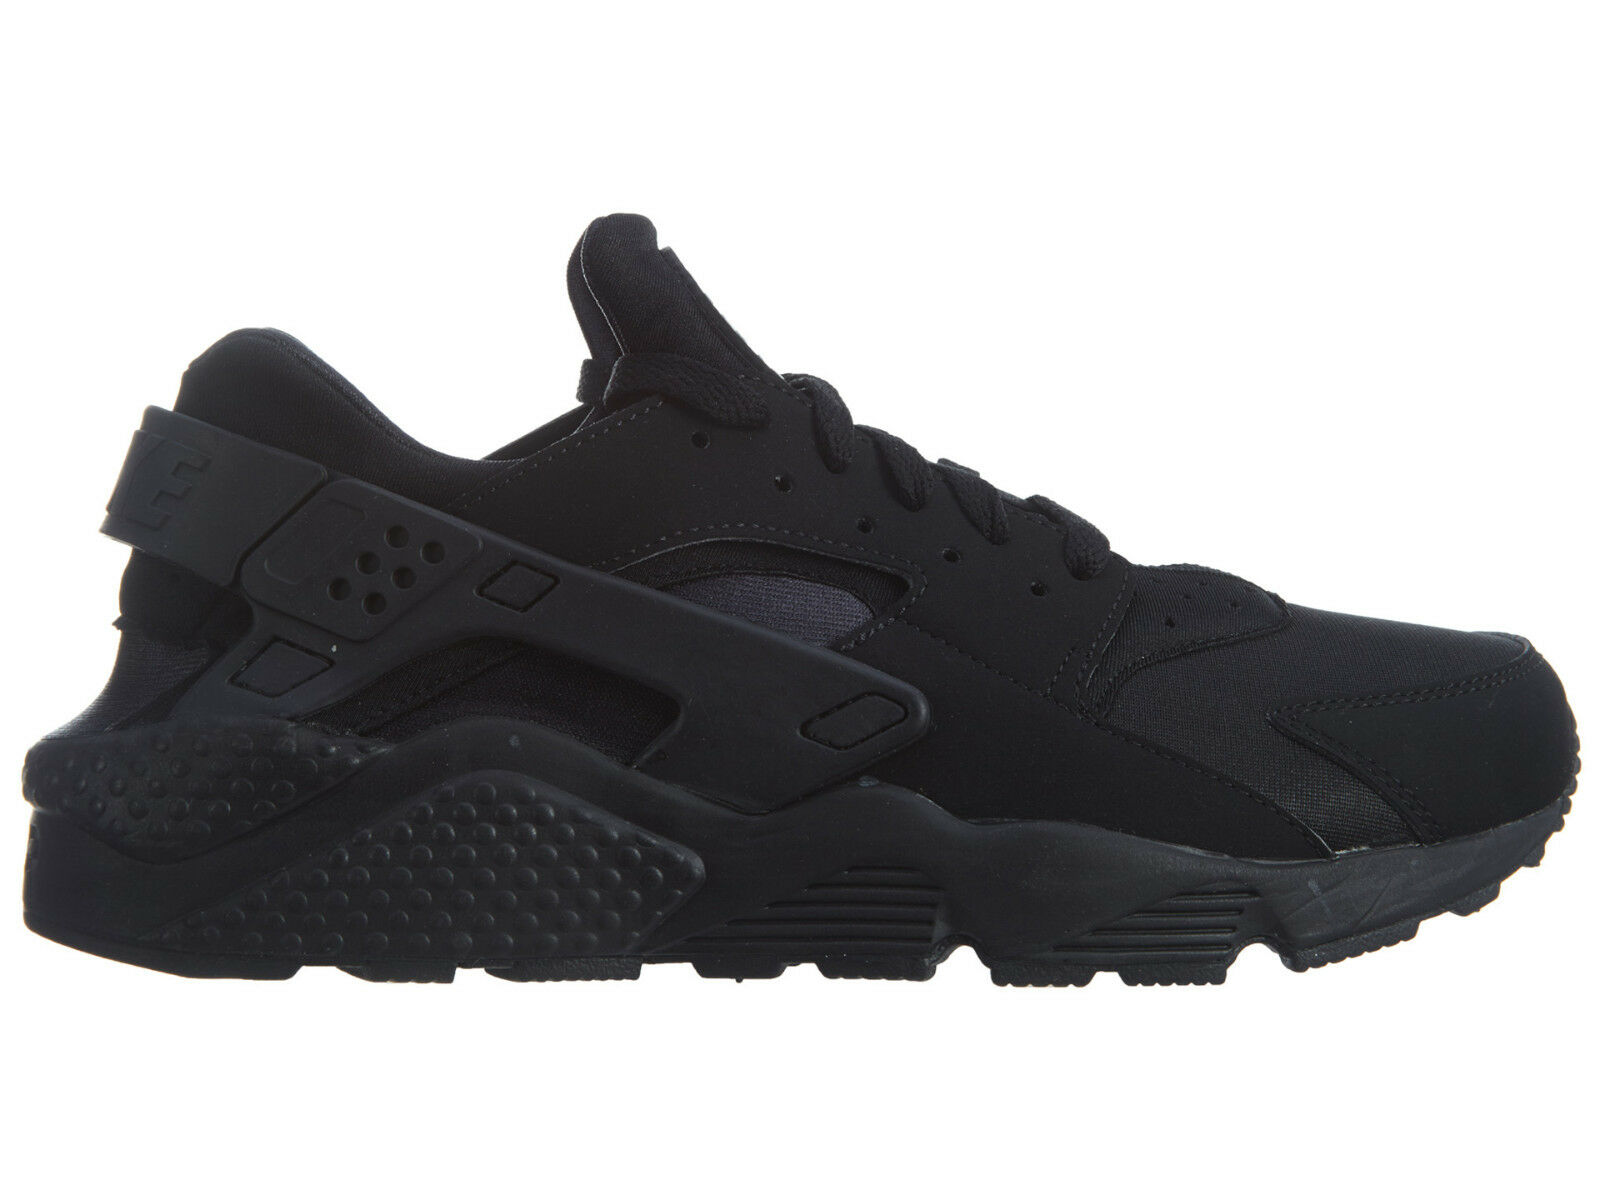 Nike Air Textile huarache hombre 318429-003 Negro Textile Air Athletic running zapatos cómodos b116cb